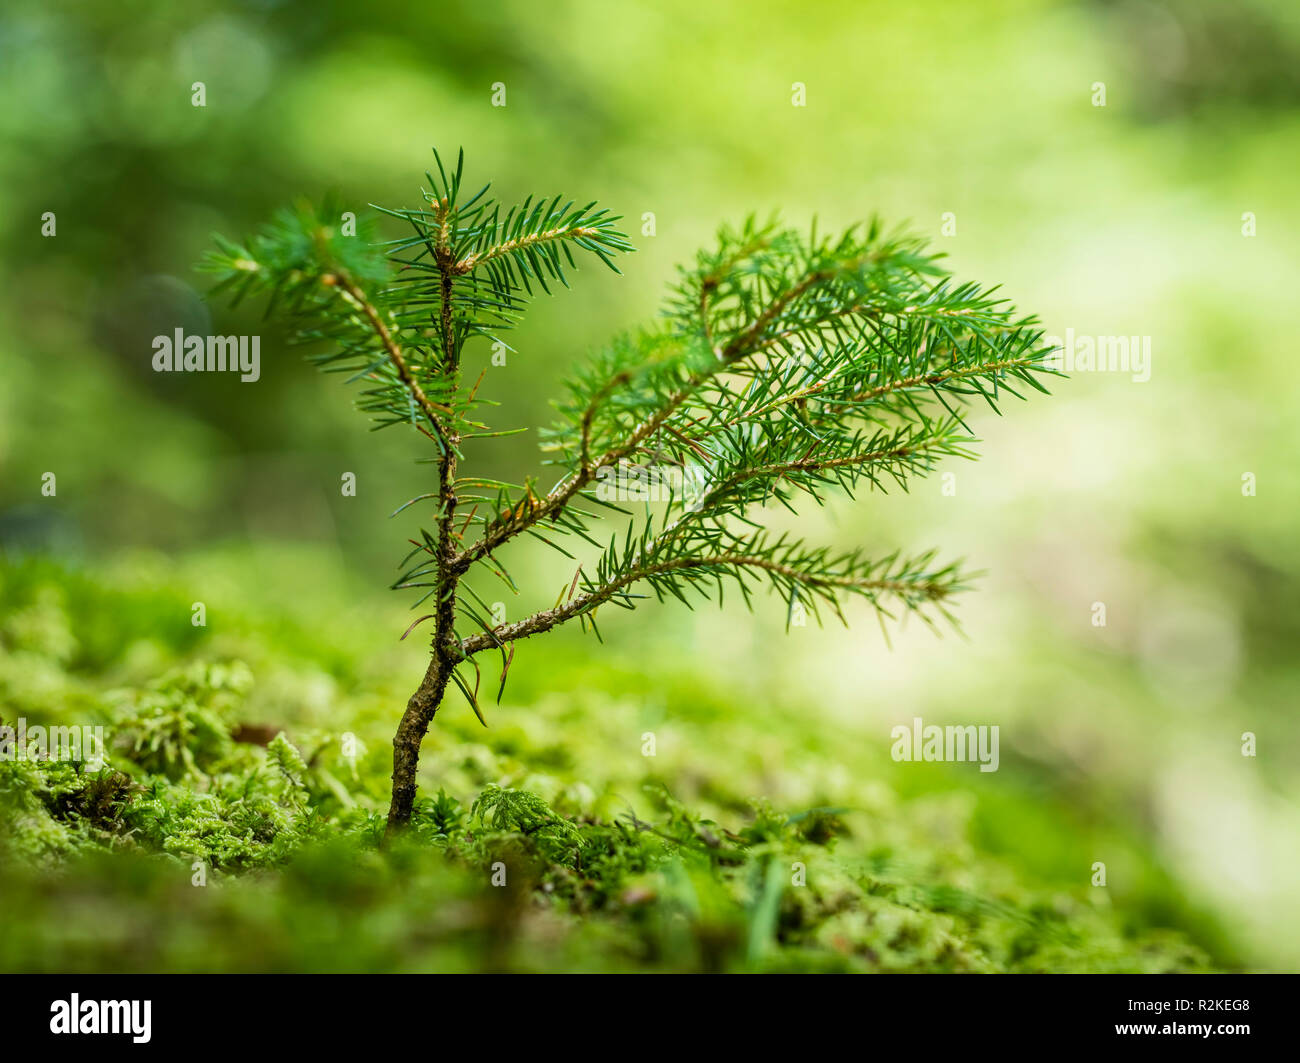 Close-up of a young shoot of a conifer - Stock Image